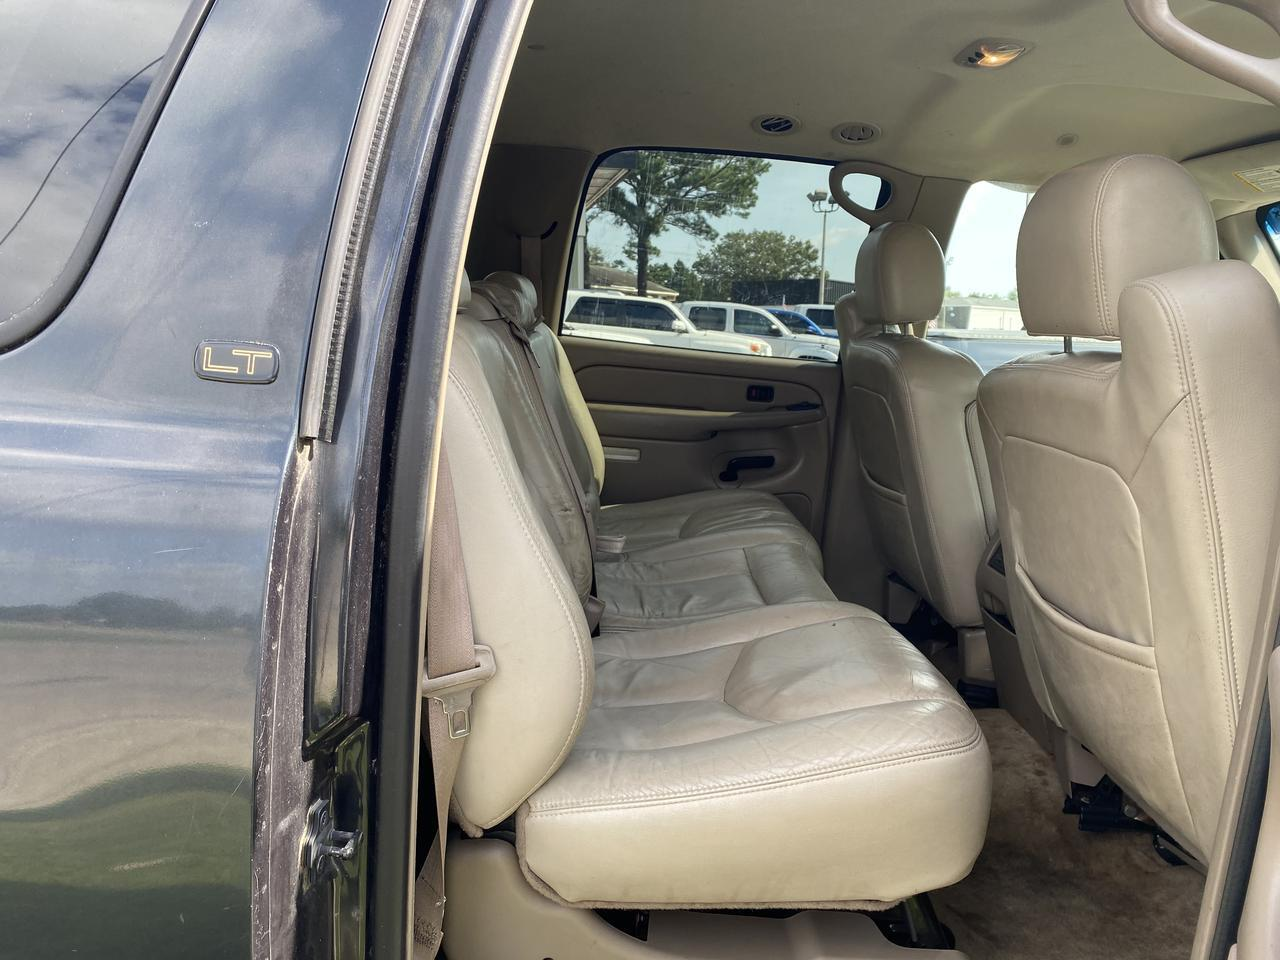 2004 CHEVROLET SUBURBAN LT 4X4, WHOLESALE TO PUBLIC, LEATHER, RUNNING BOARDS, TOW PKG, SINGLE CD PLAYER, CLEAN CARFAX! Norfolk VA